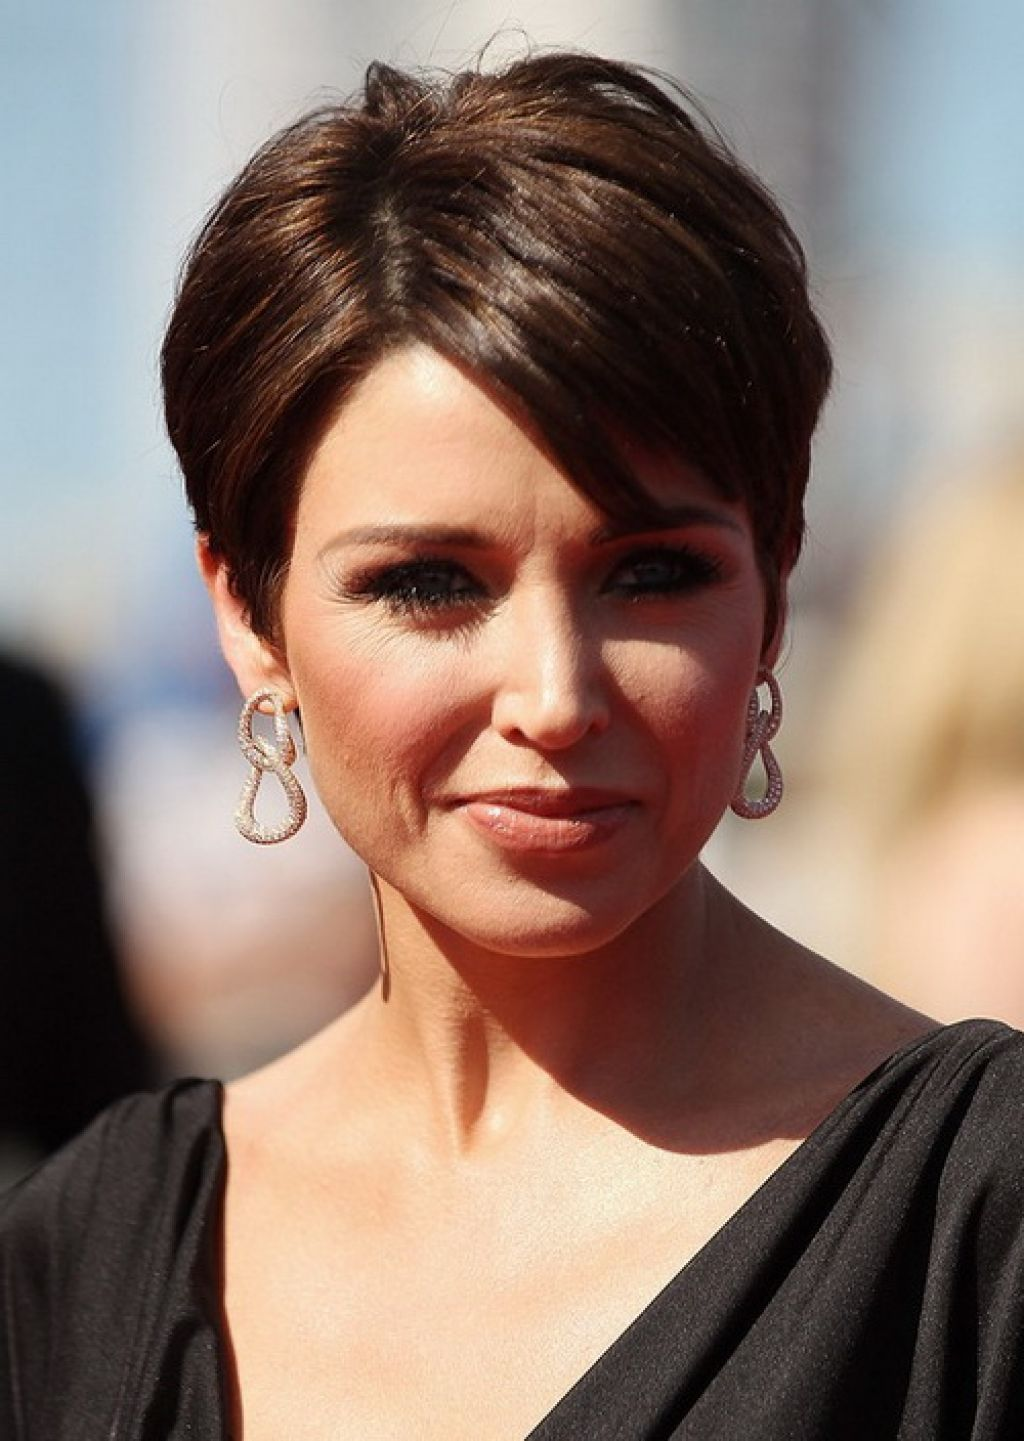 Hairstyles inspiration hairstyle for women over for your